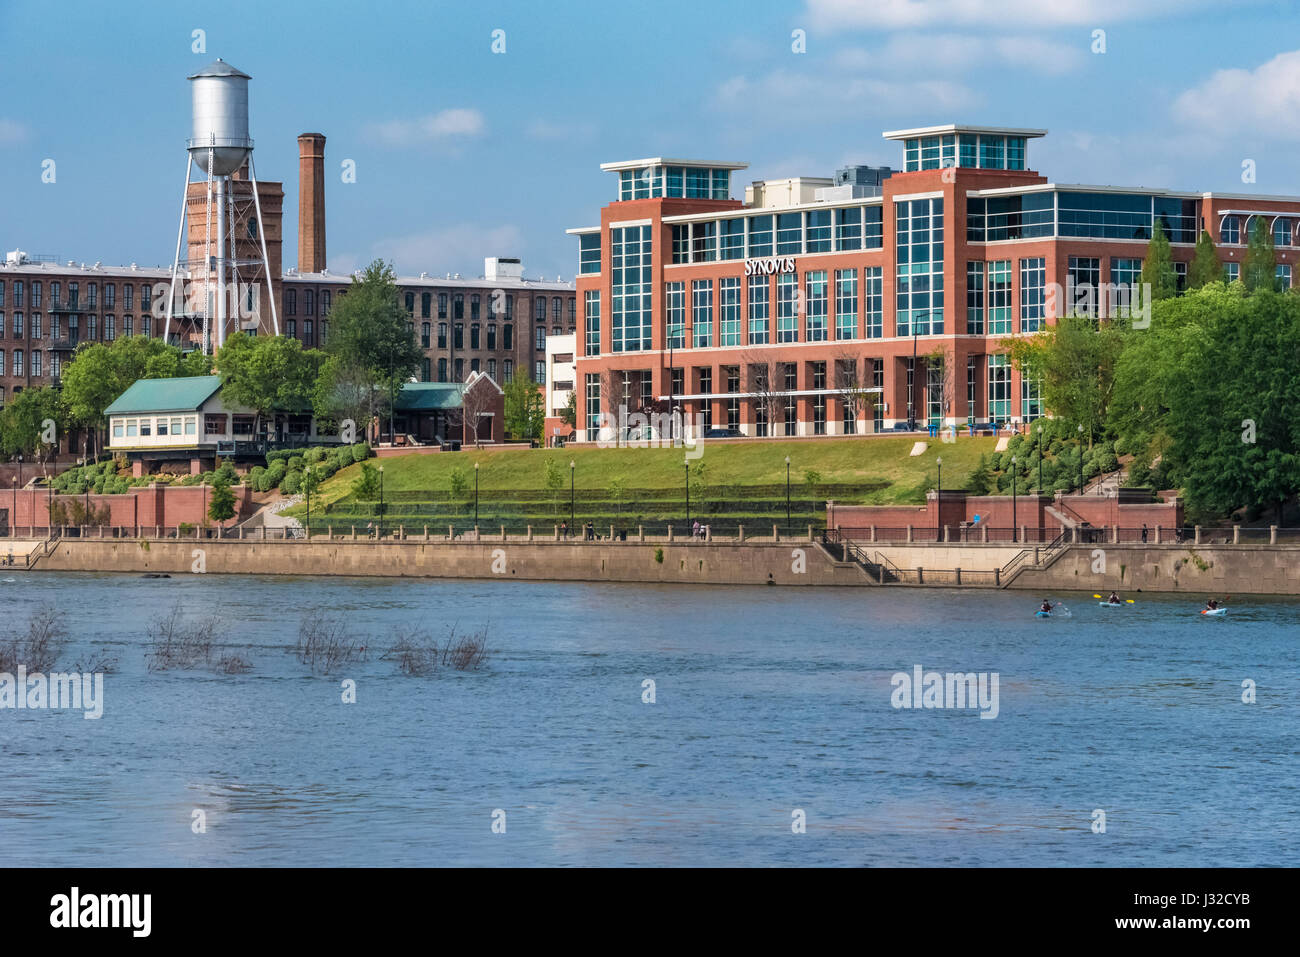 Columbus, Georgia's iconic water tower, mill stacks, and the Synovus headquarters building along the Chattahoochee - Stock Image